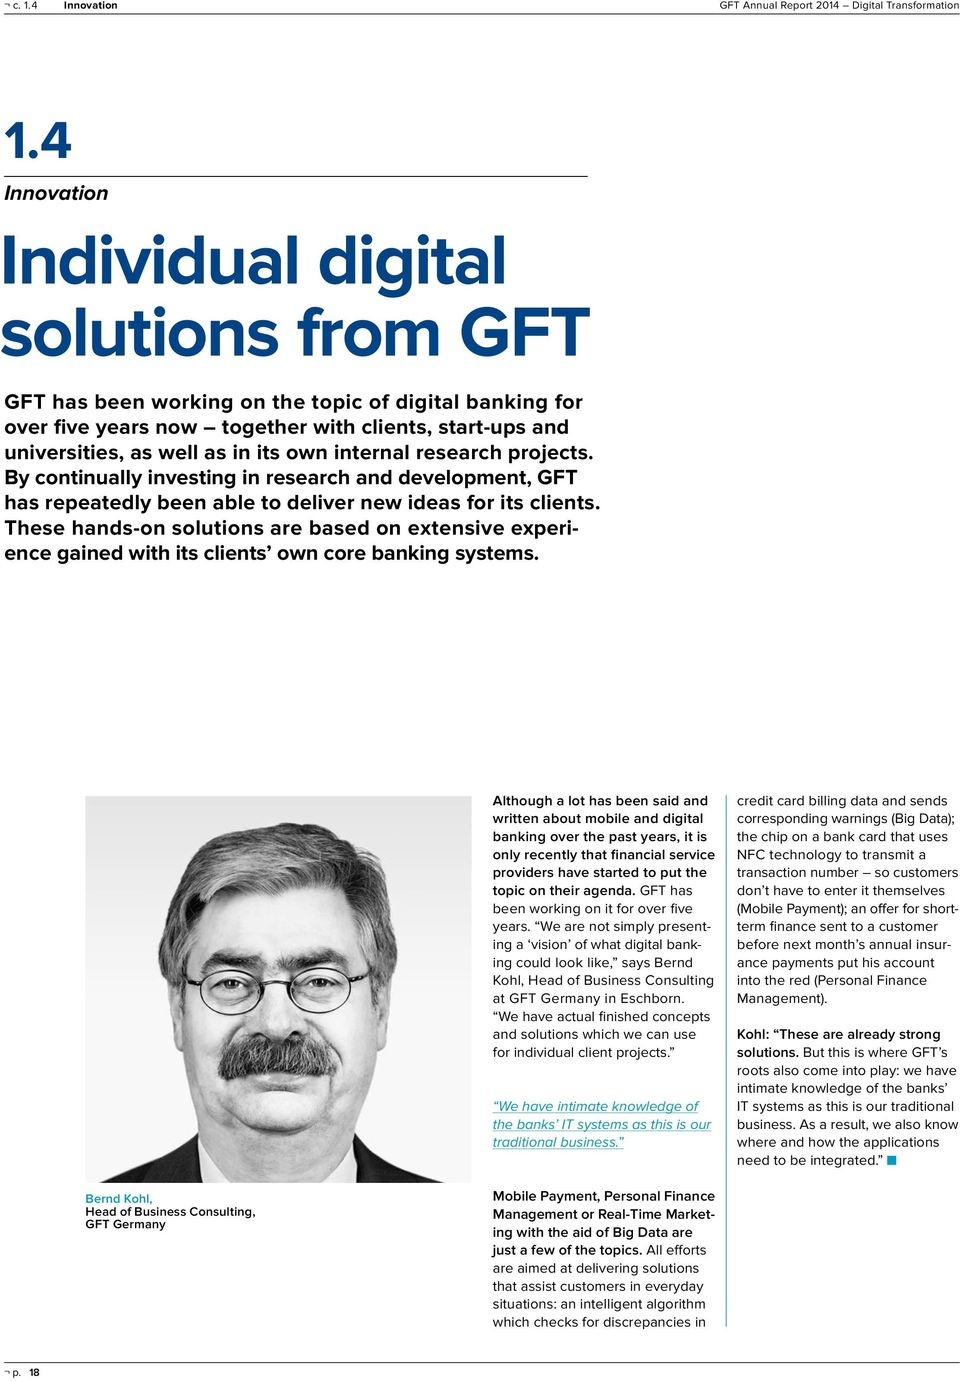 own internal research projects. By continually investing in research and development, GFT has repeatedly been able to deliver new ideas for its clients.